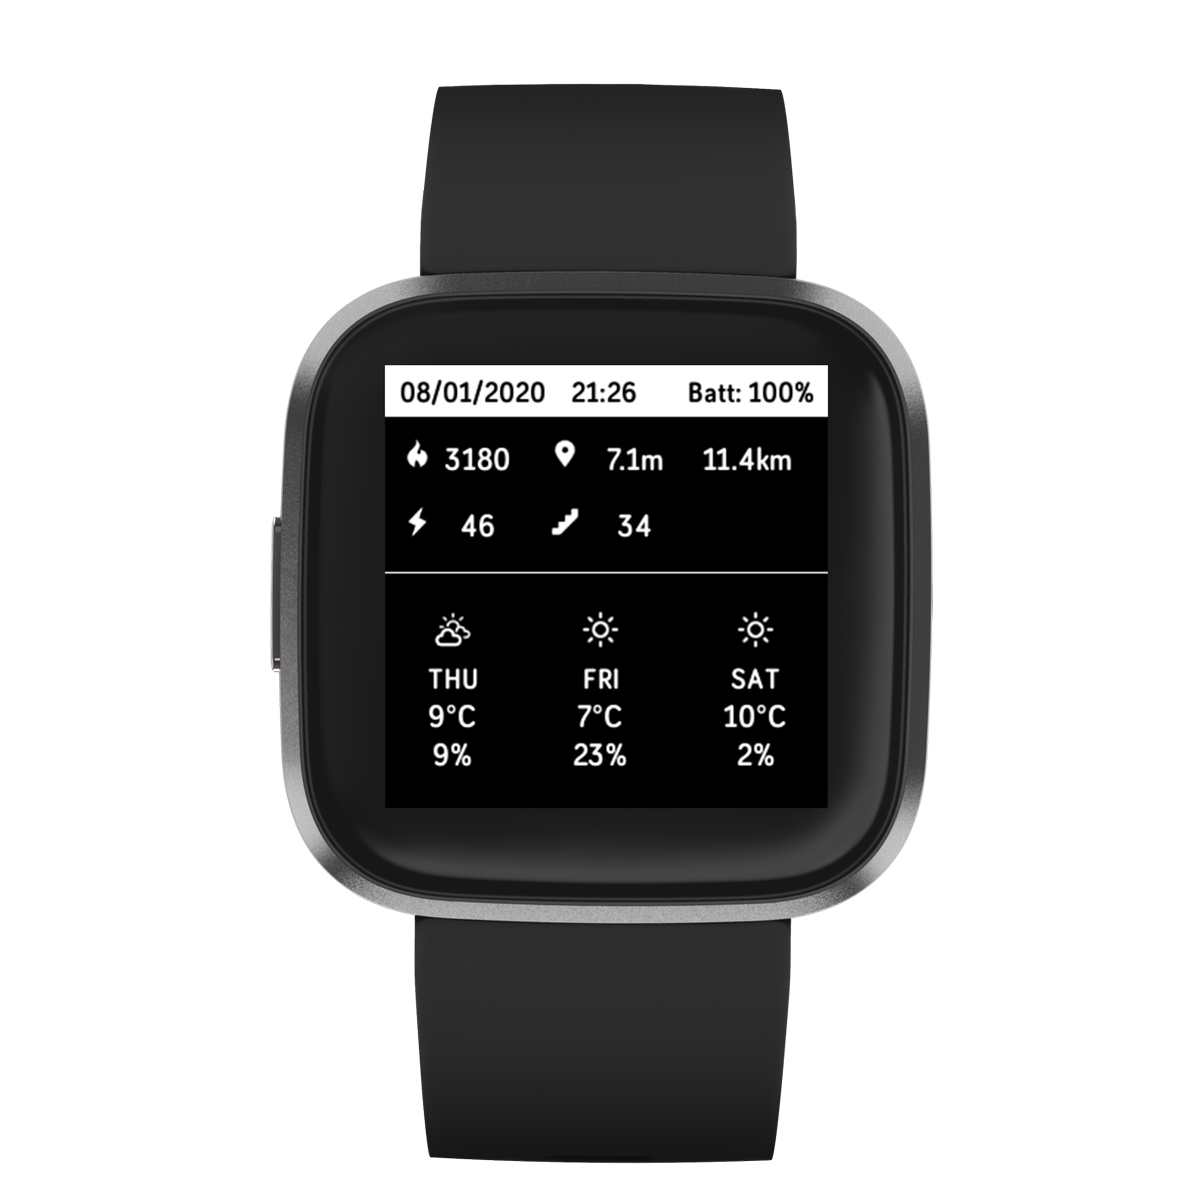 http://www.watchfacestore.com/fitbit has amazing #fitbit #watchfaces. Get to know the 4 Day Stretch. View your stats for Steps for today and the previous 3 days right from the watchface. 7 Day average and total..#fitbitversa2 #fitbitversa #fitbitionic #fitness #made4fitbit #clockface #watch…pic.twitter.com/iaUX7qc6FX